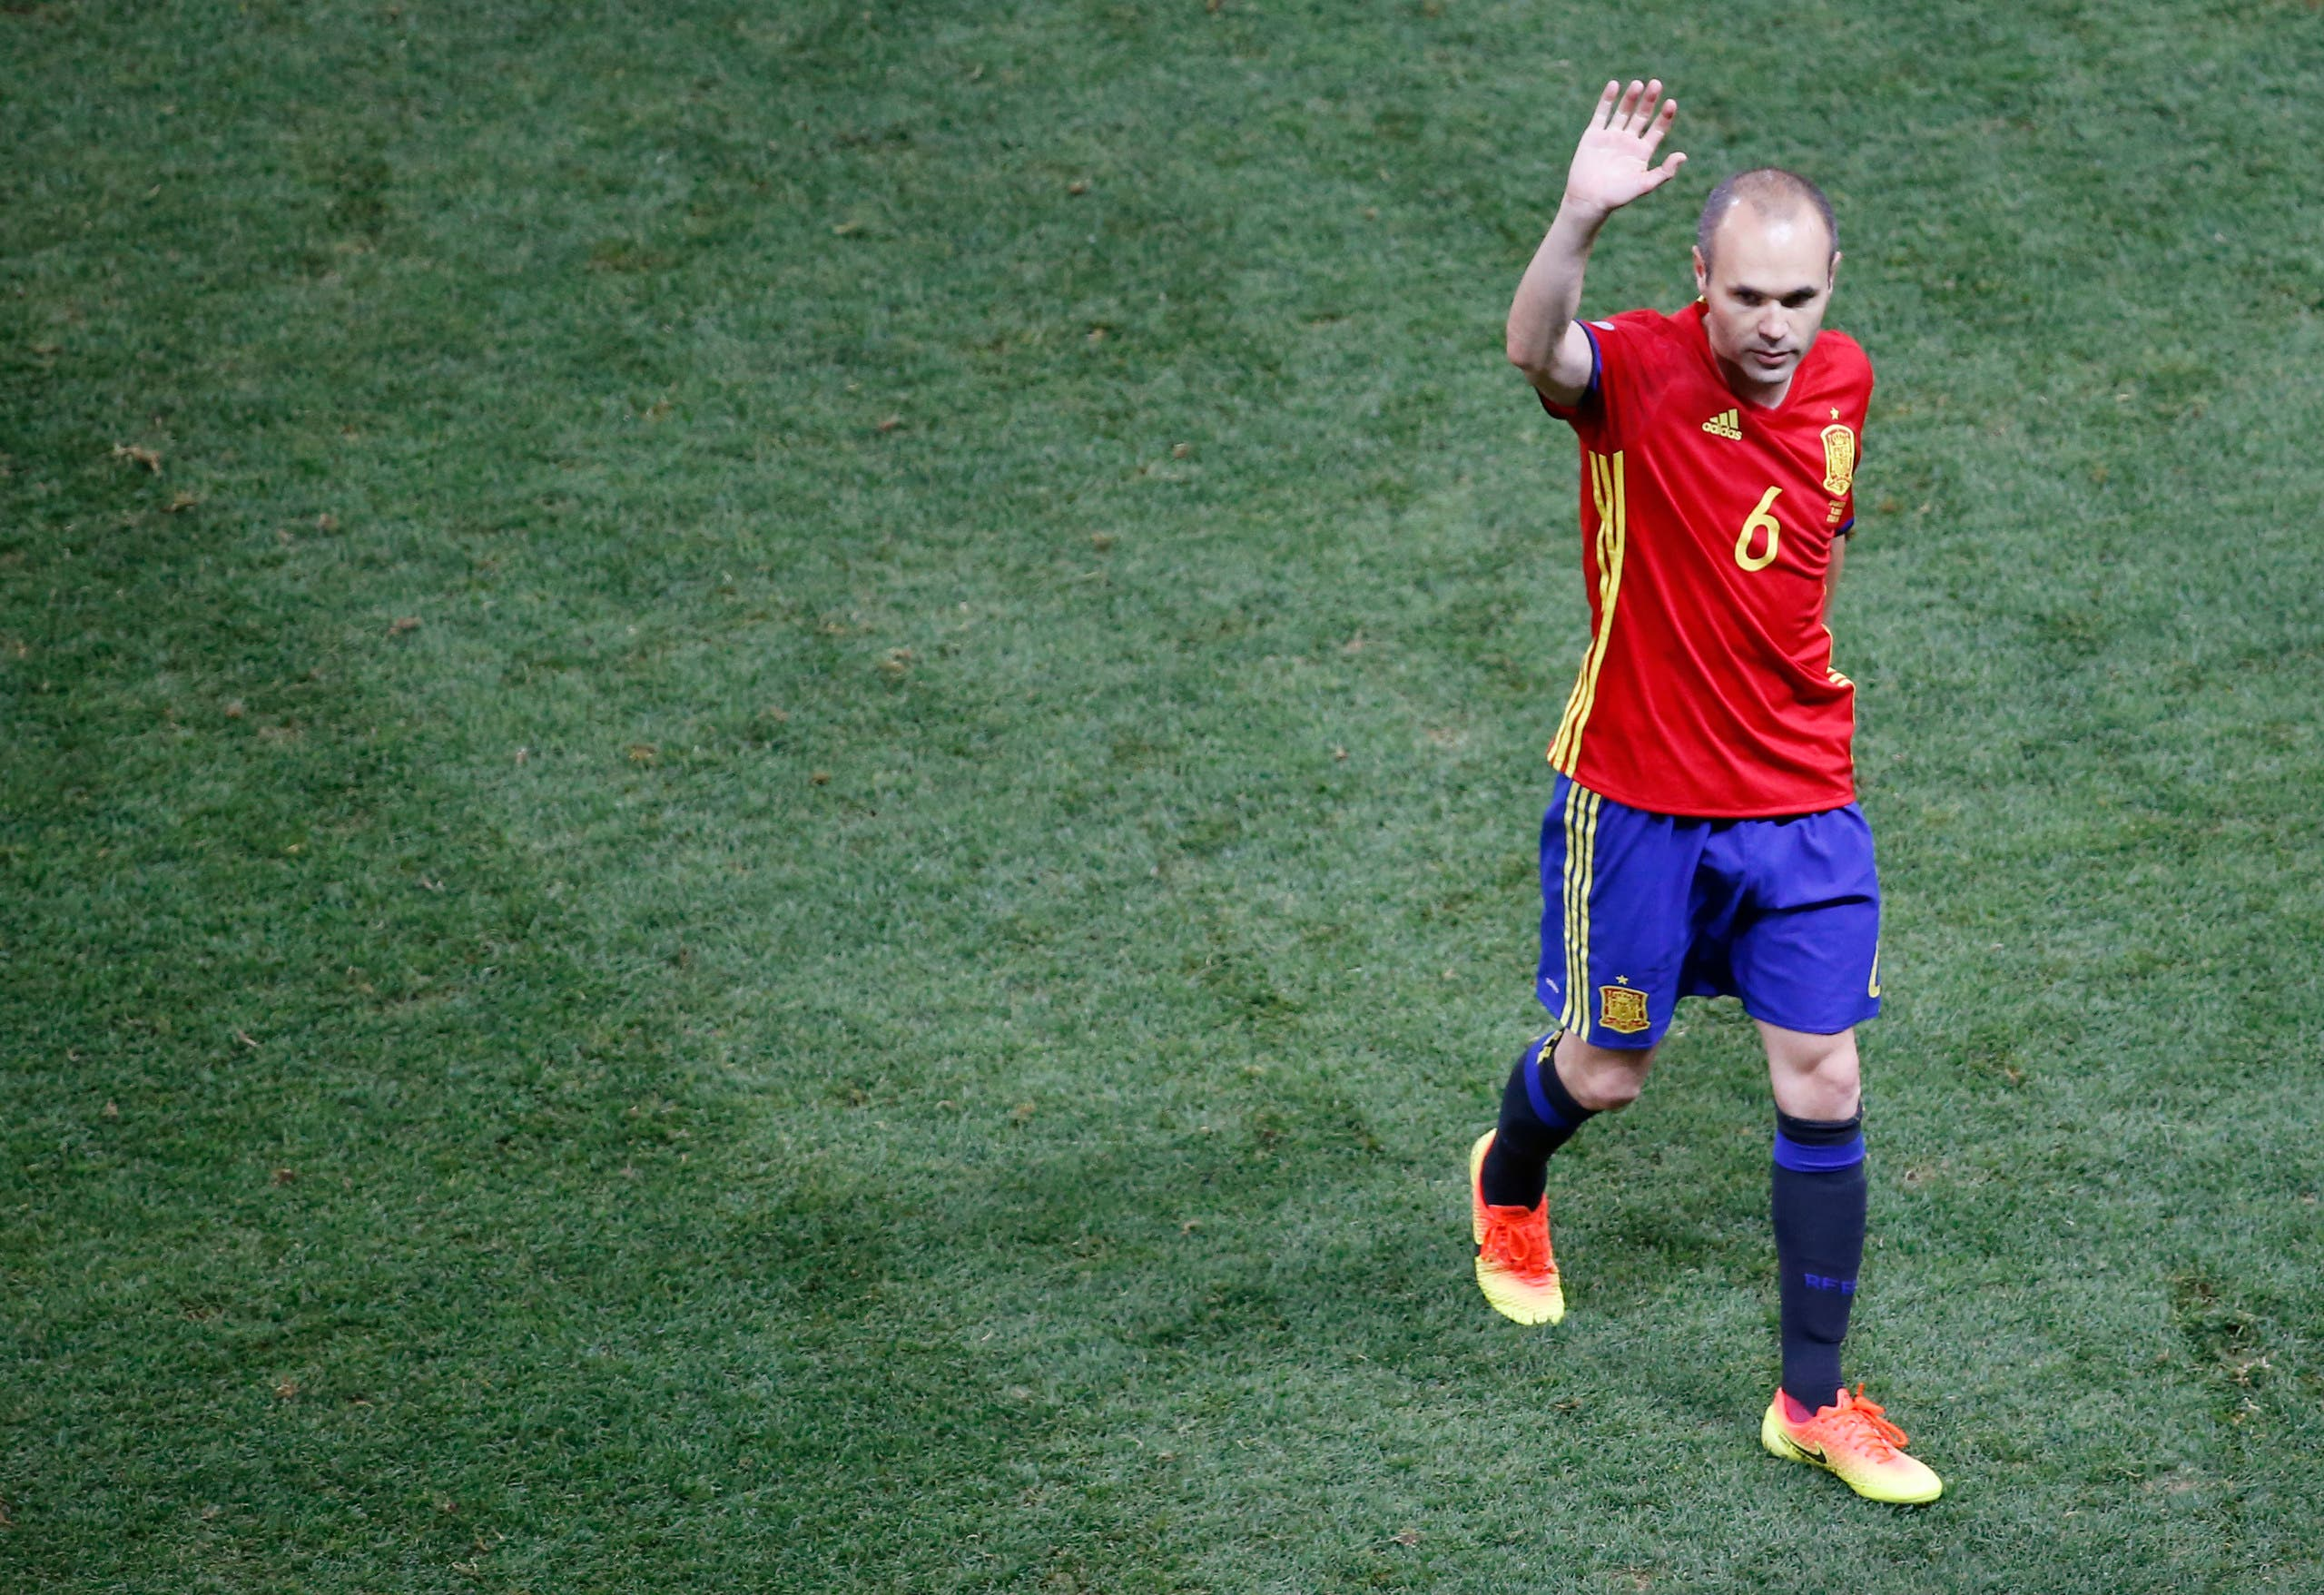 Spain v Turkey - EURO 2016 - Group D - Stade de Nice, Nice, France - 17/6/16 Spain's Andres Iniesta waves to fans after the game. (Reuters)